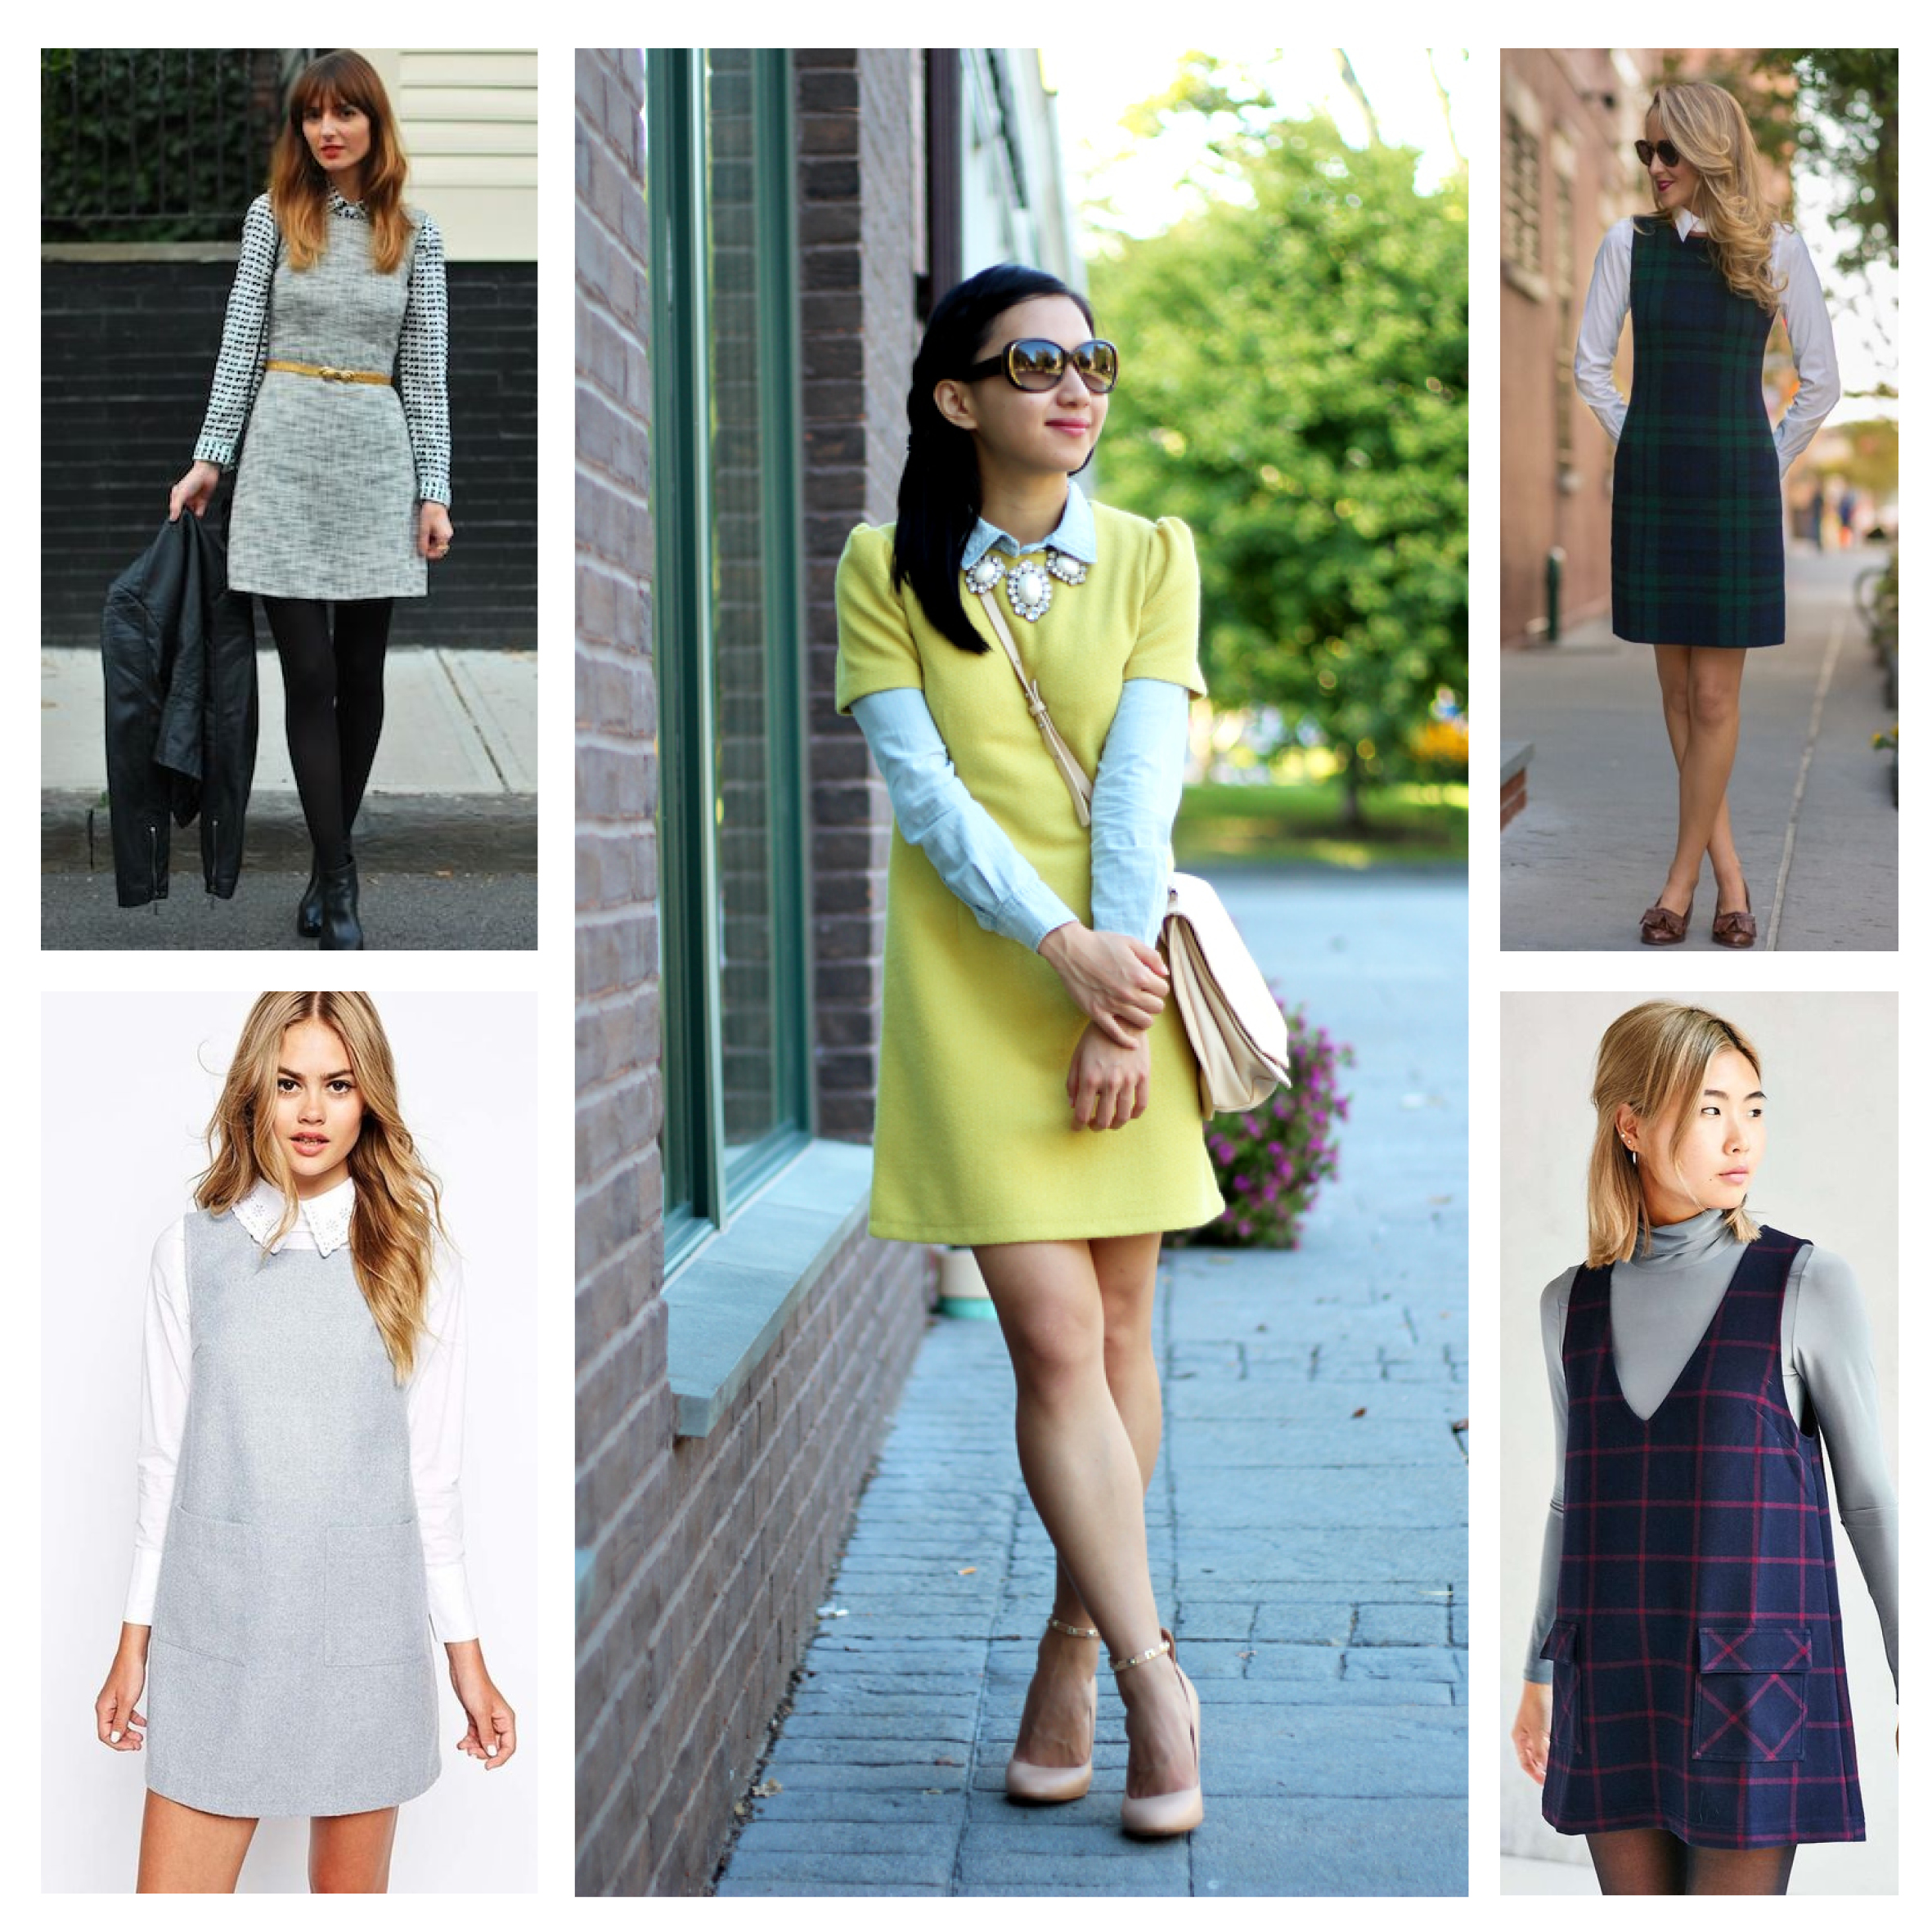 Layered shift dresses montage